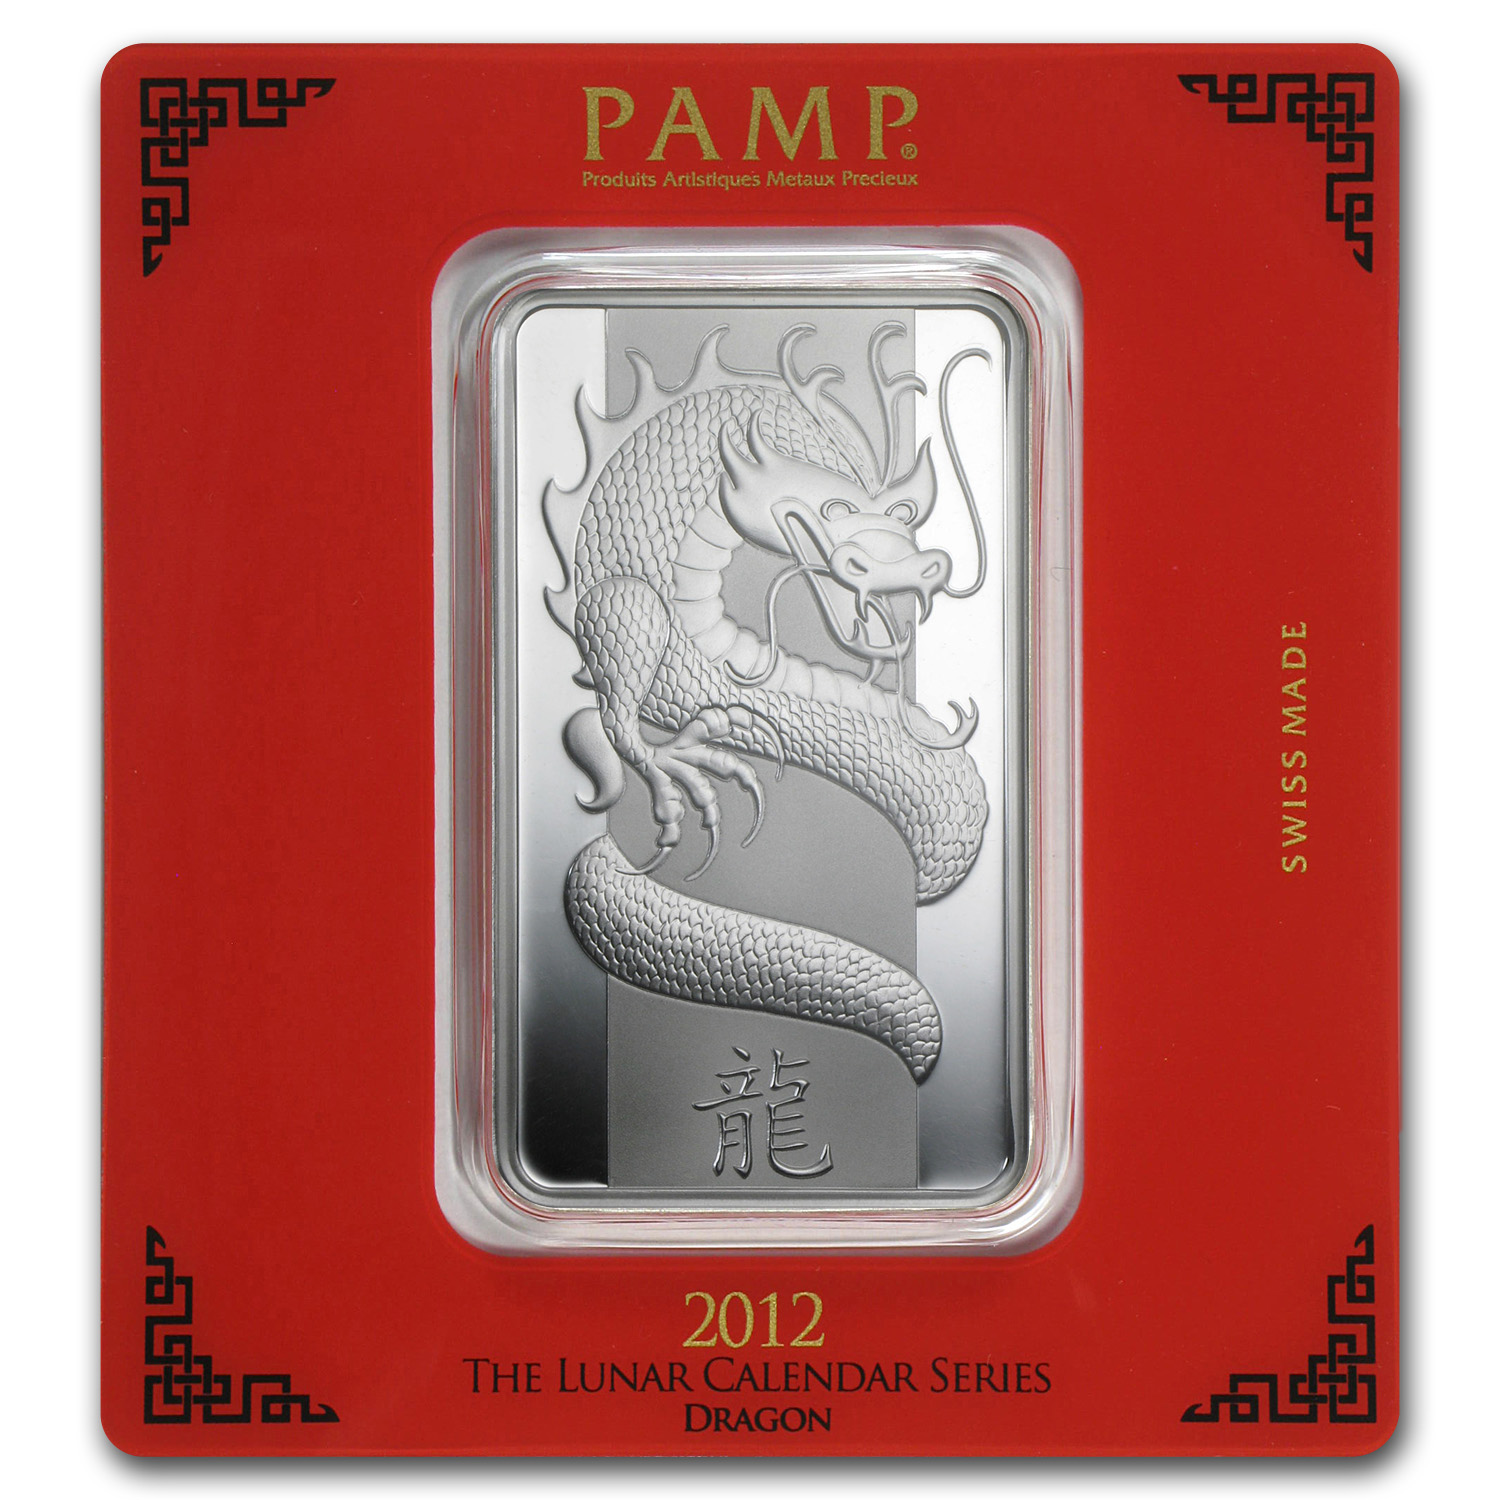 100 gram Silver Bar - PAMP Suisse (Year of the Dragon)